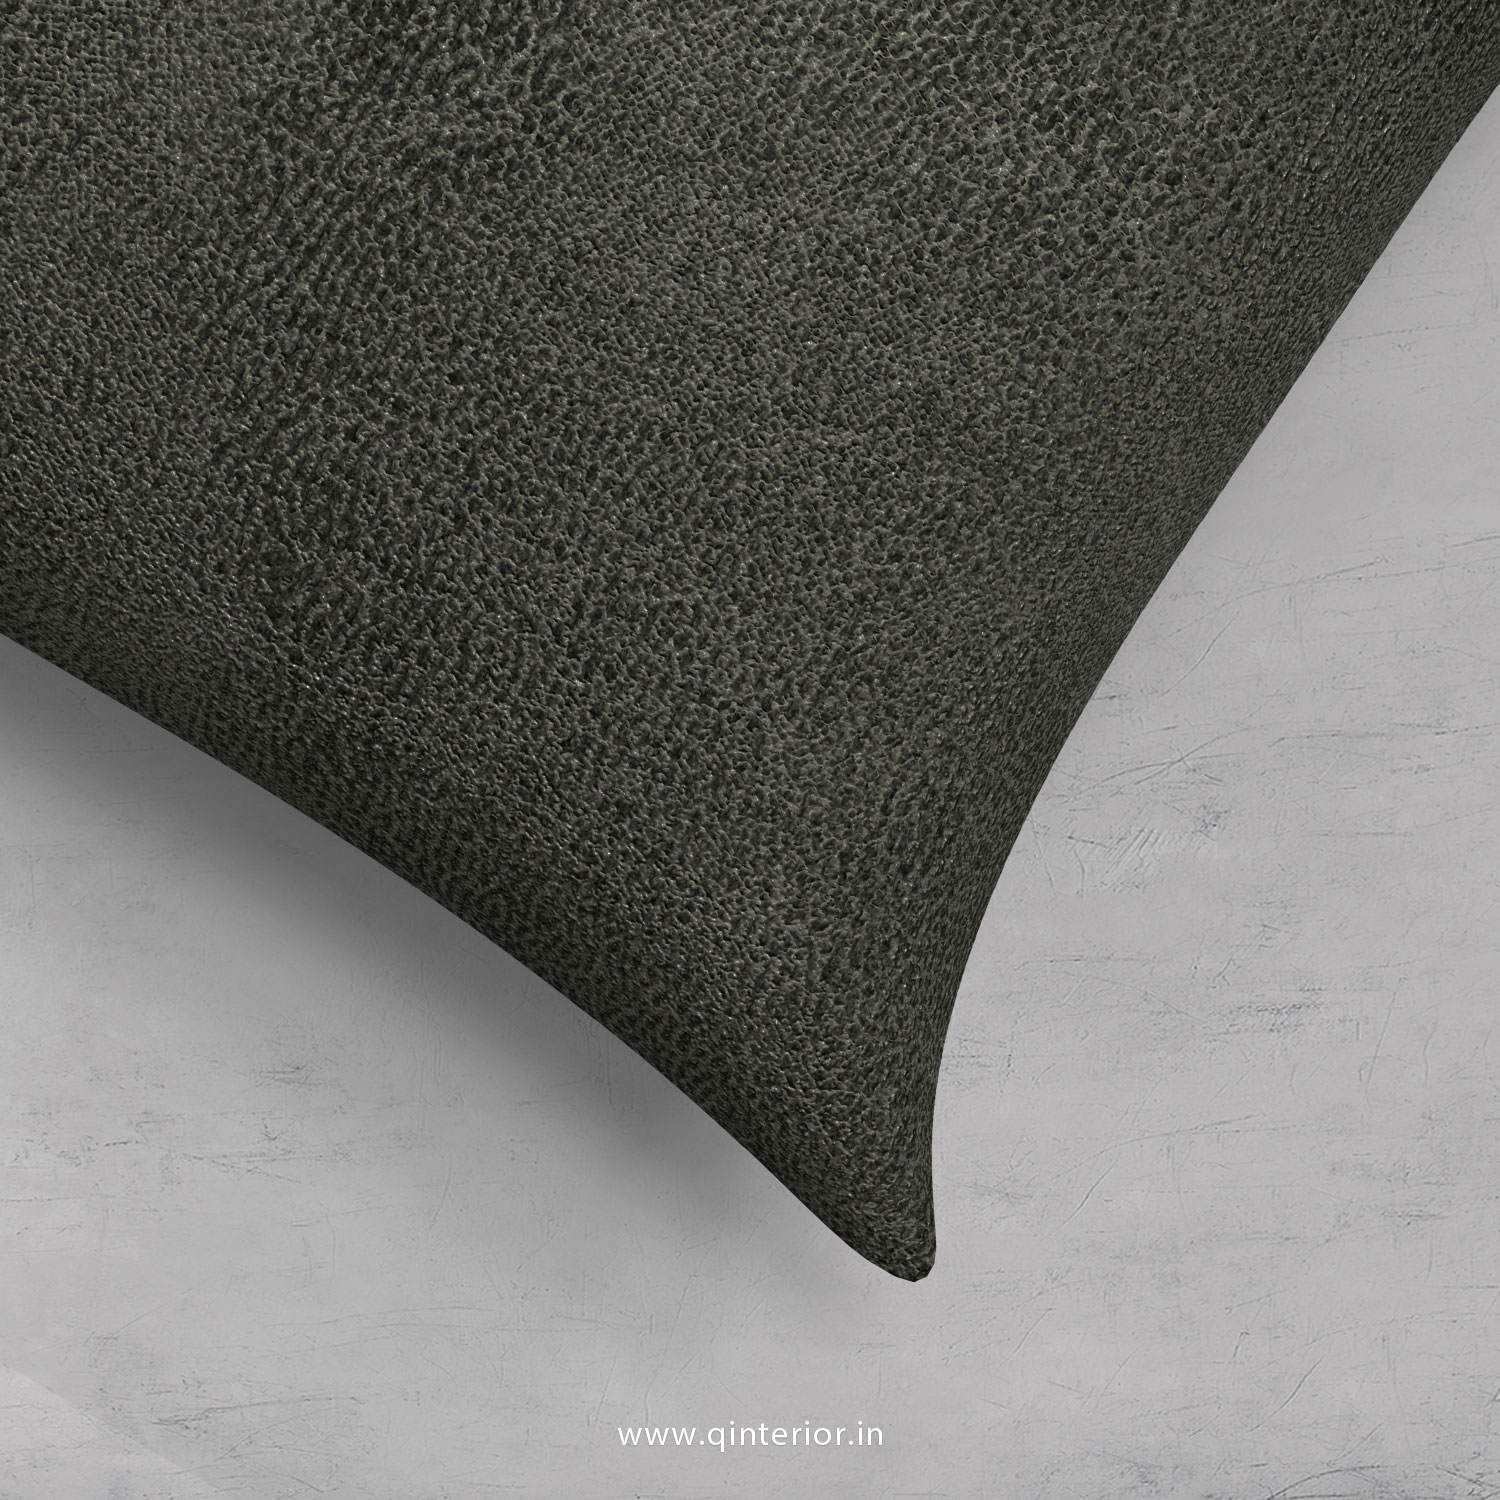 Charcoal Fab Leather Cushion With Cushion Cover - CUS001 FL